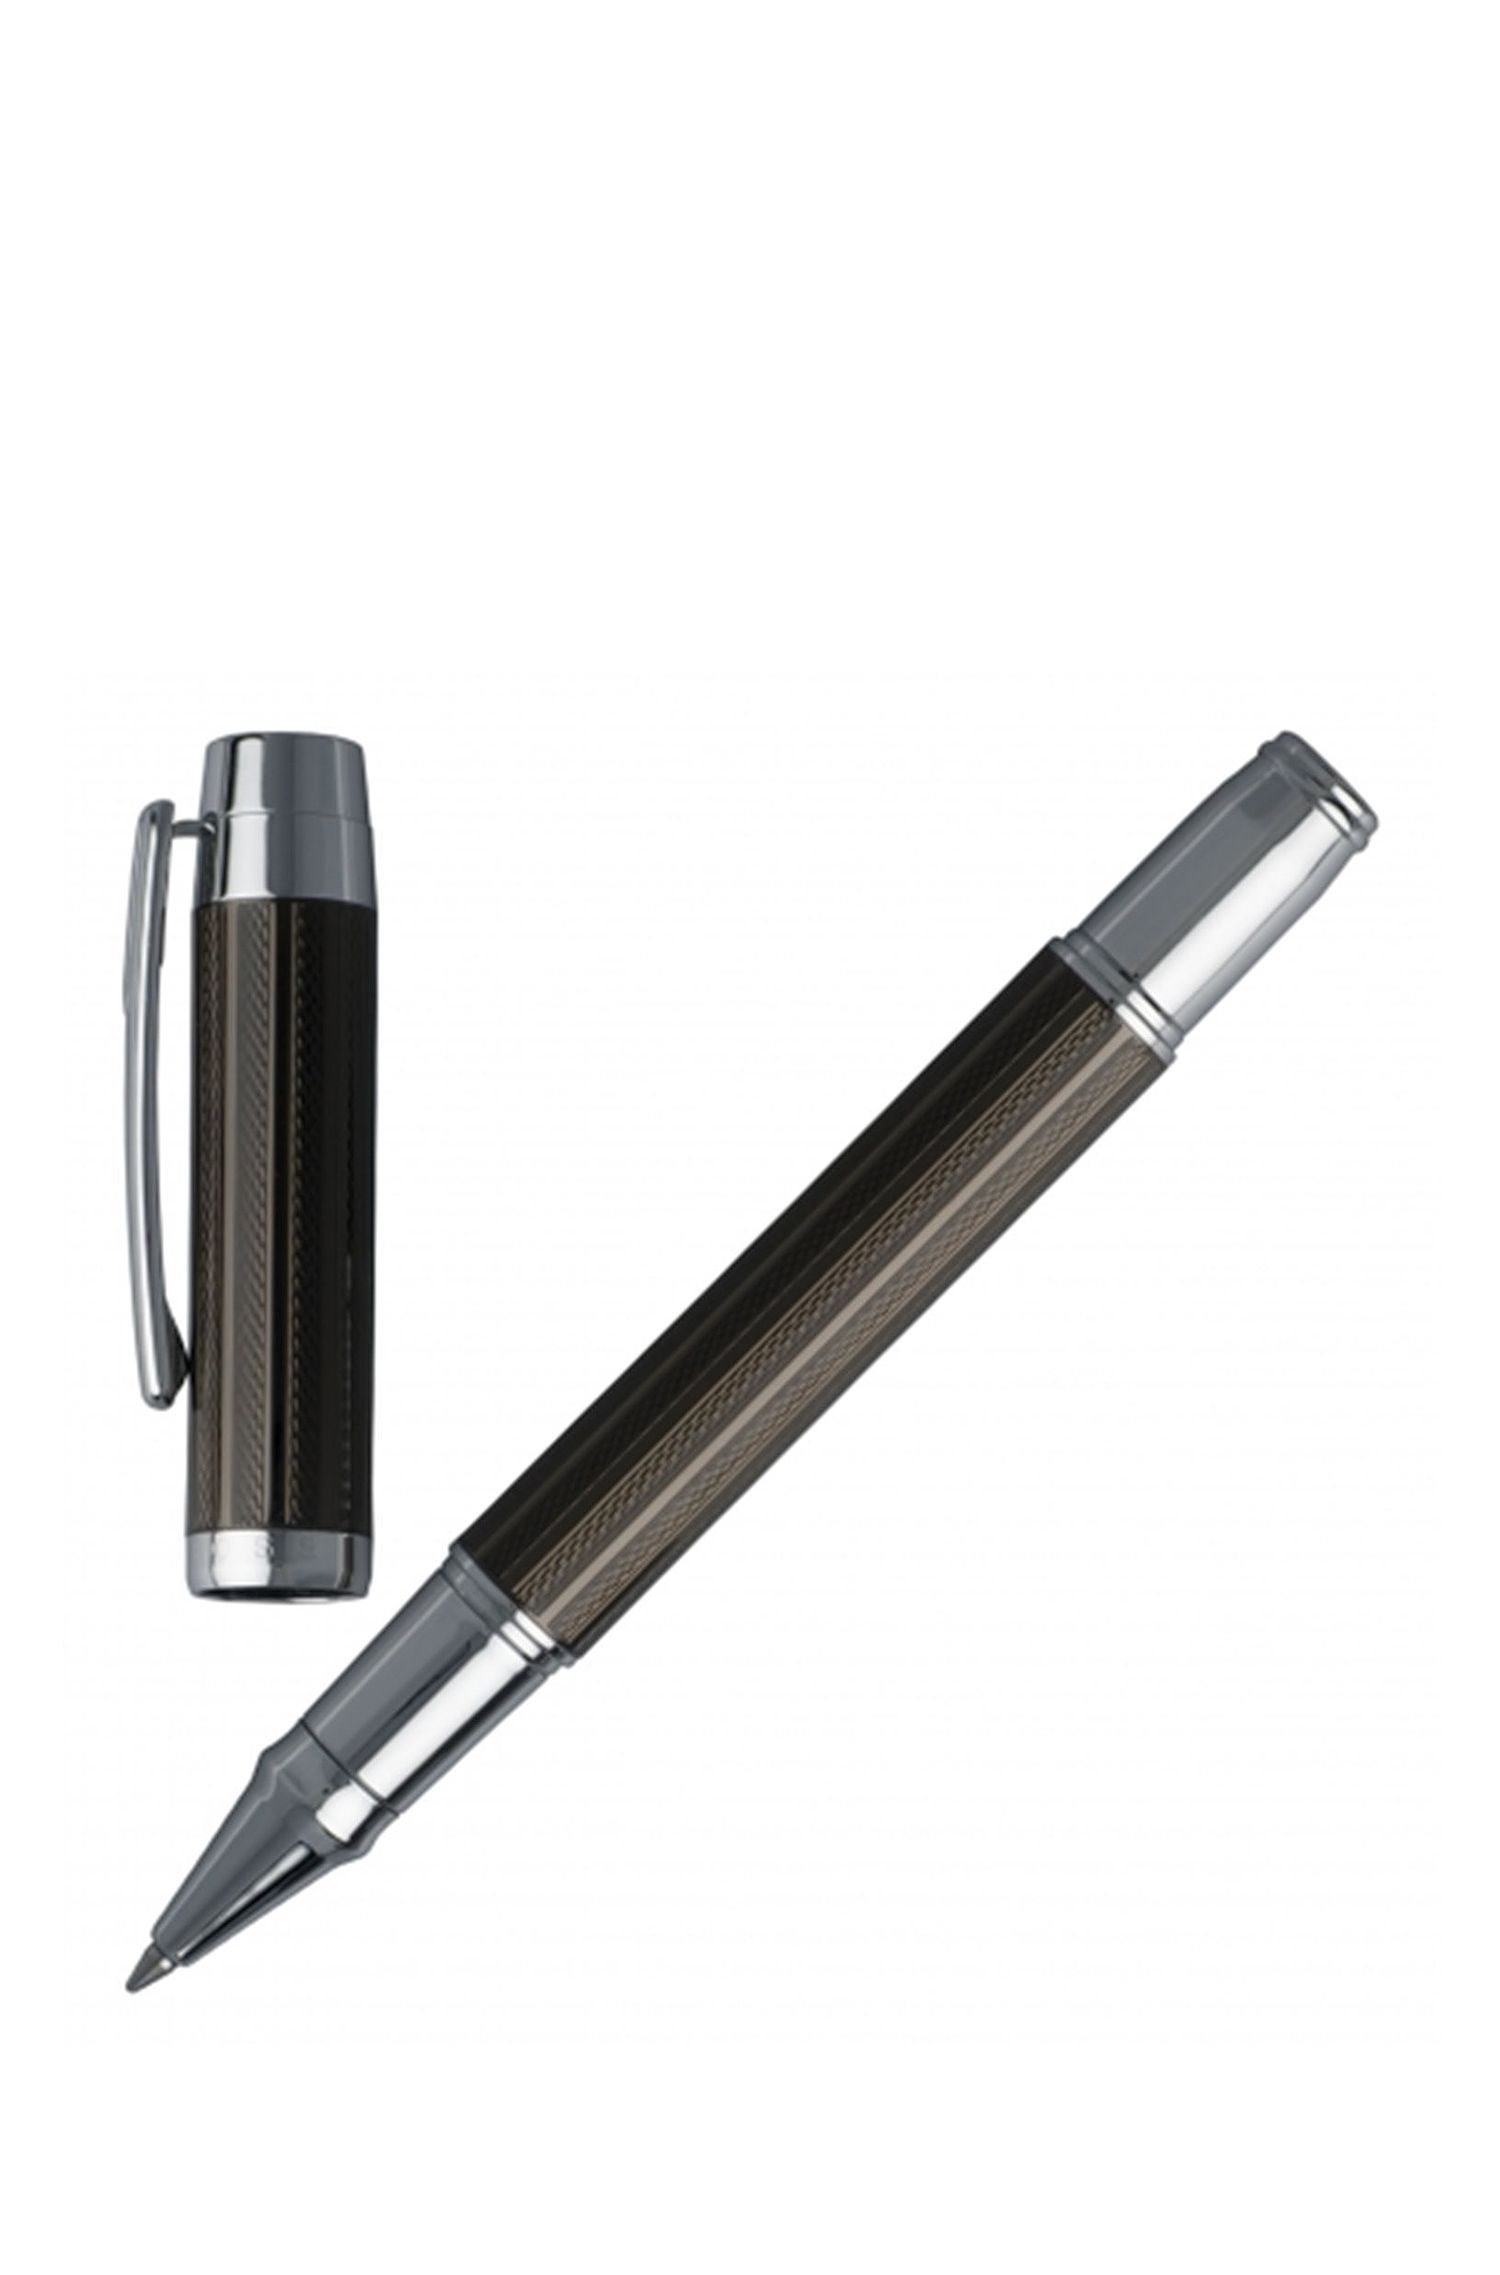 Rollerball pen with black technical crafted surface